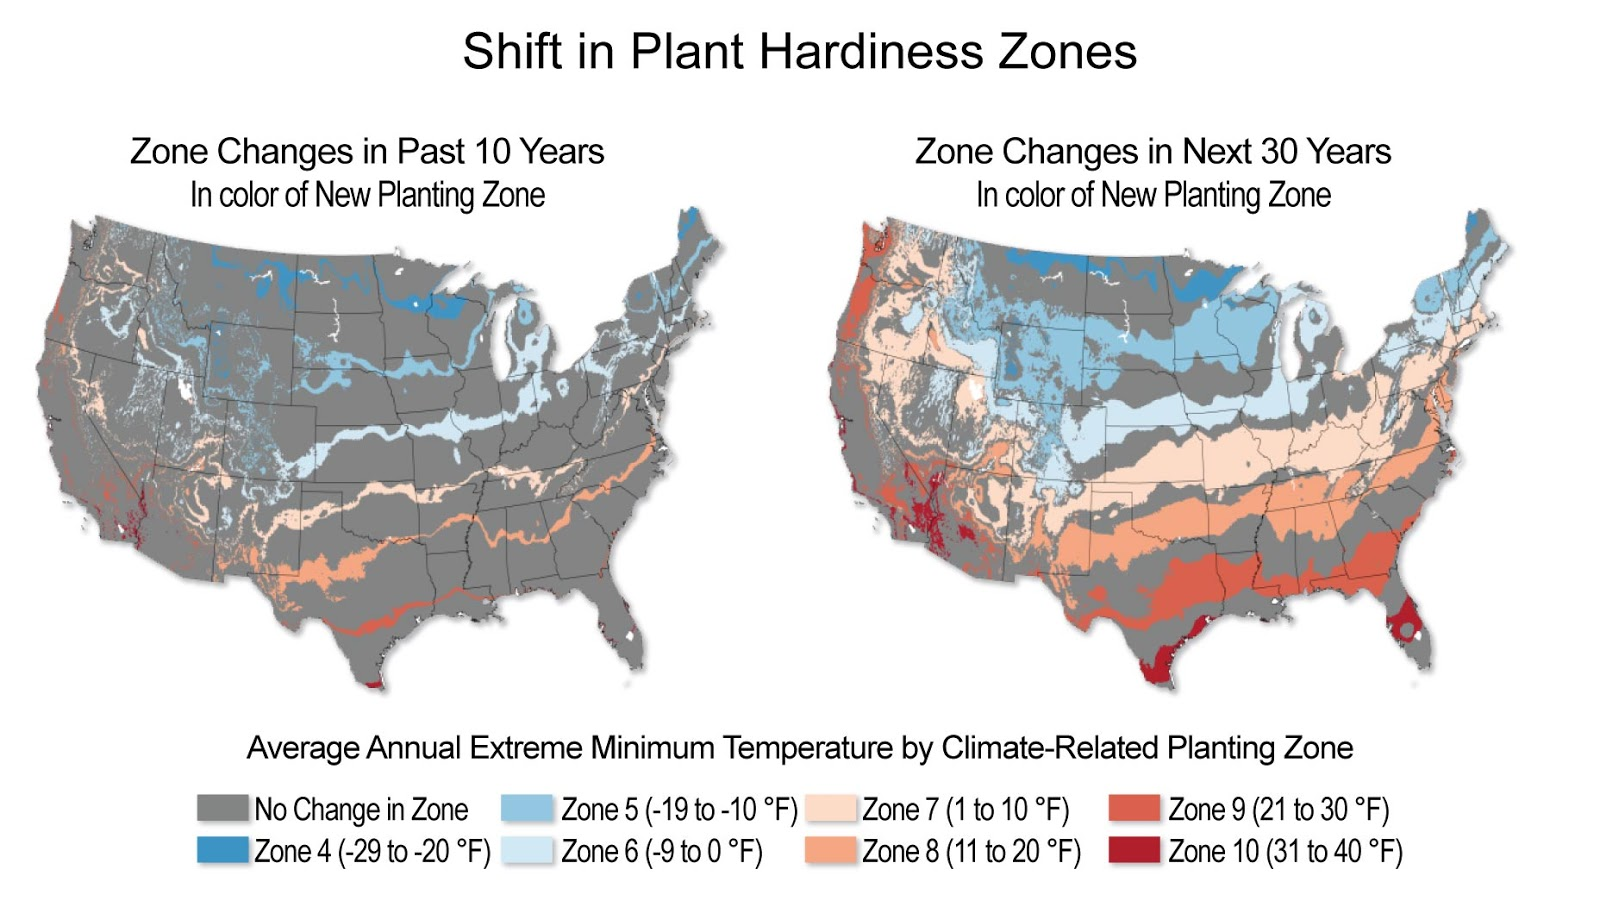 Shift in plant USDA hardiness zones in the United States